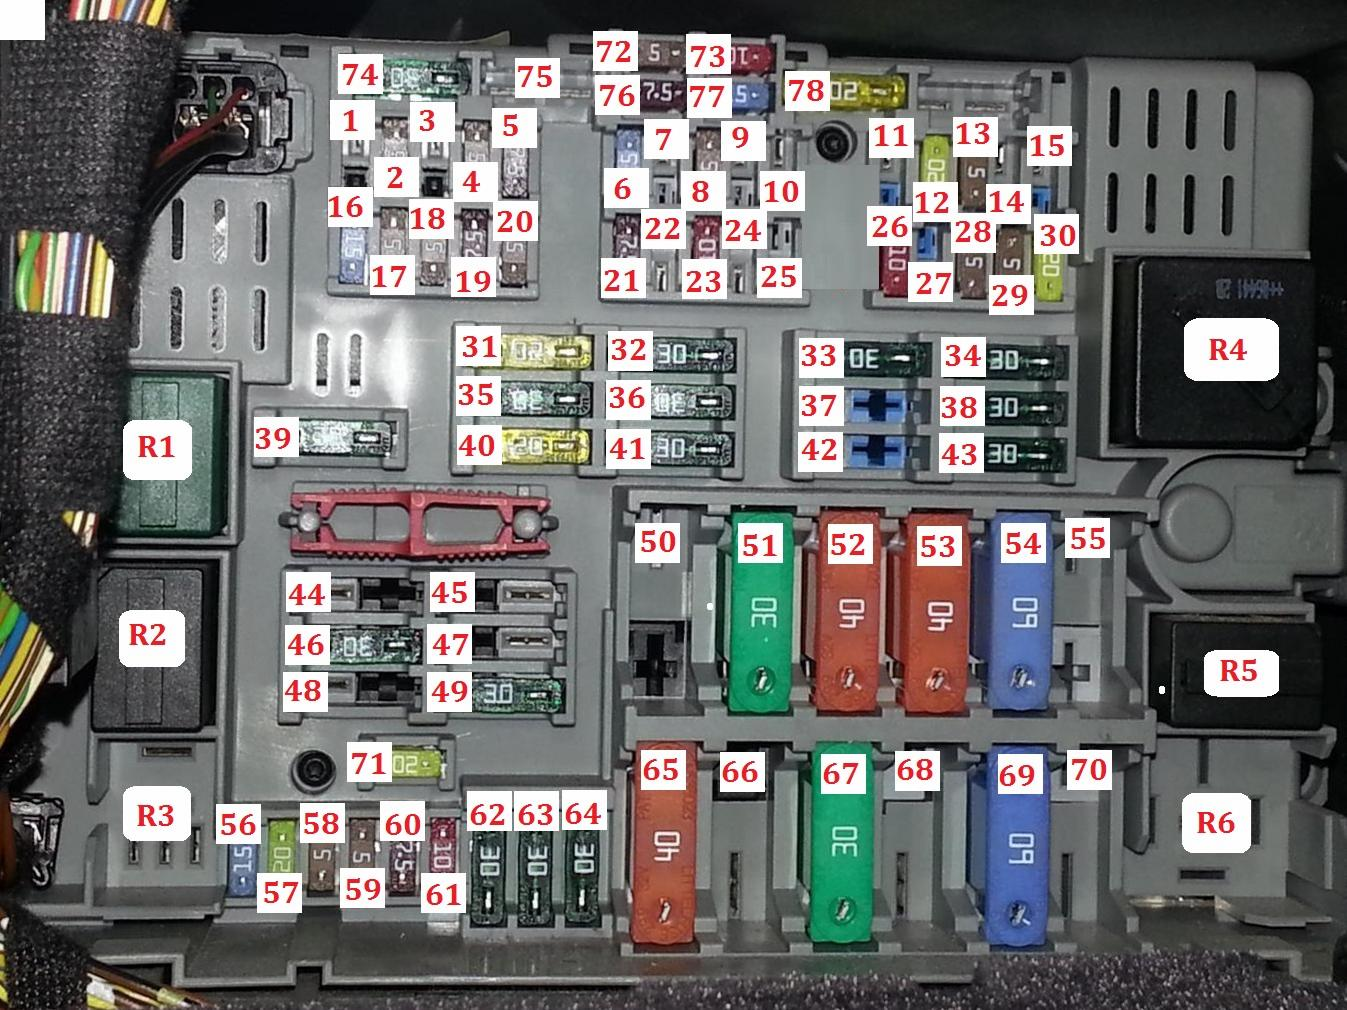 fuse and relay box diagram bmw e90 bmw 325i fuse box layout bmw e90 blok 4